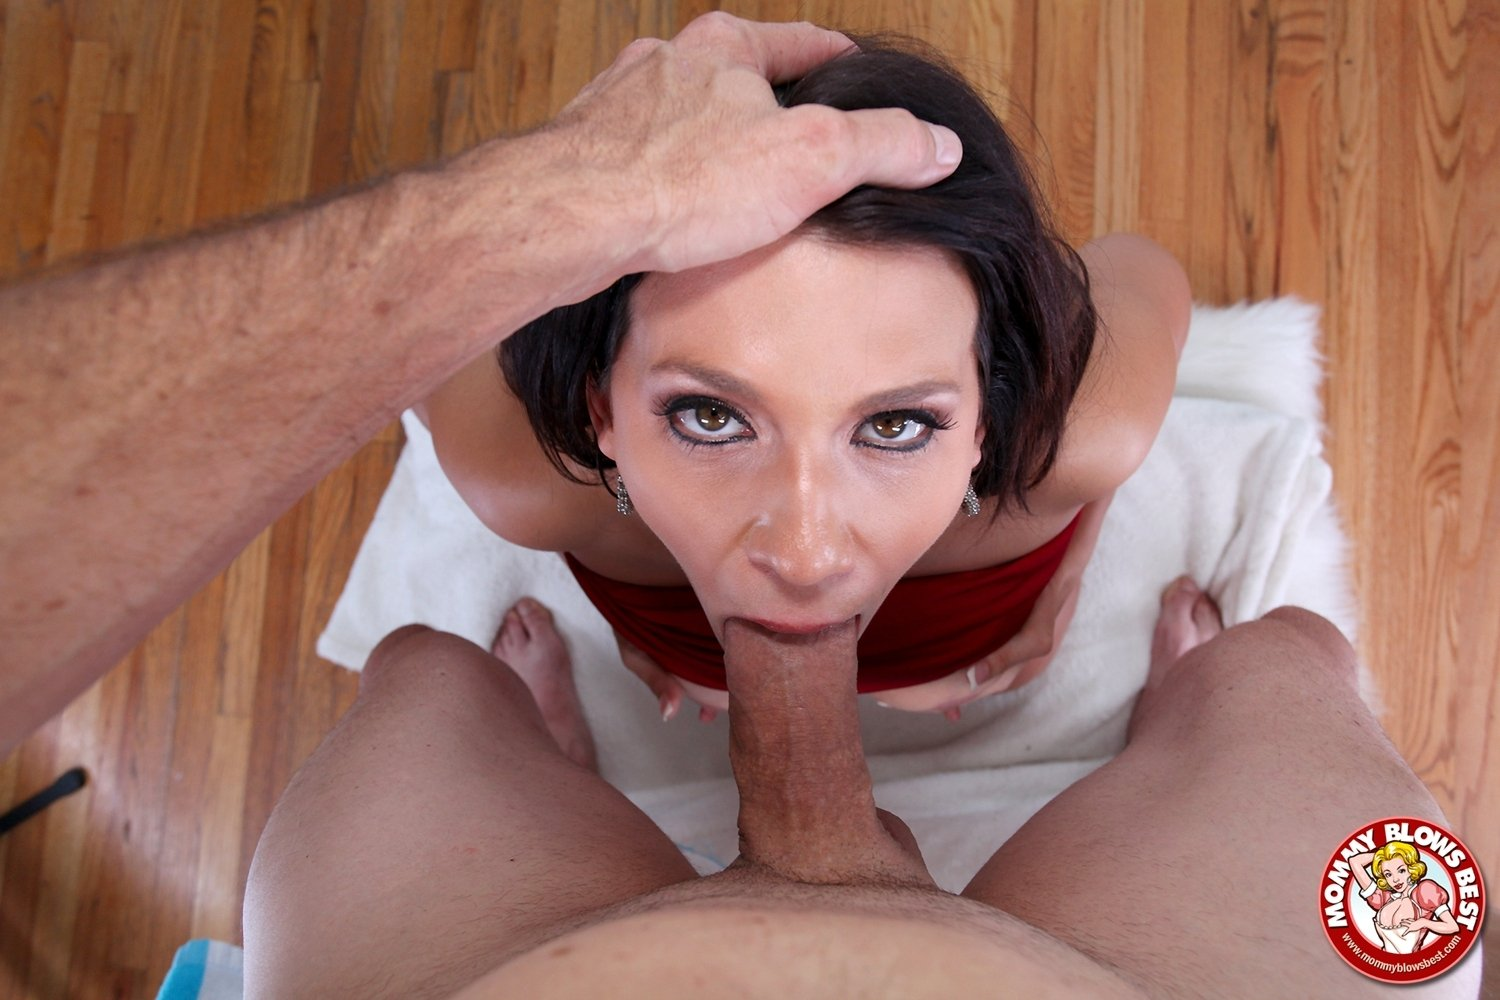 Cum On Clothes Movies Free 107